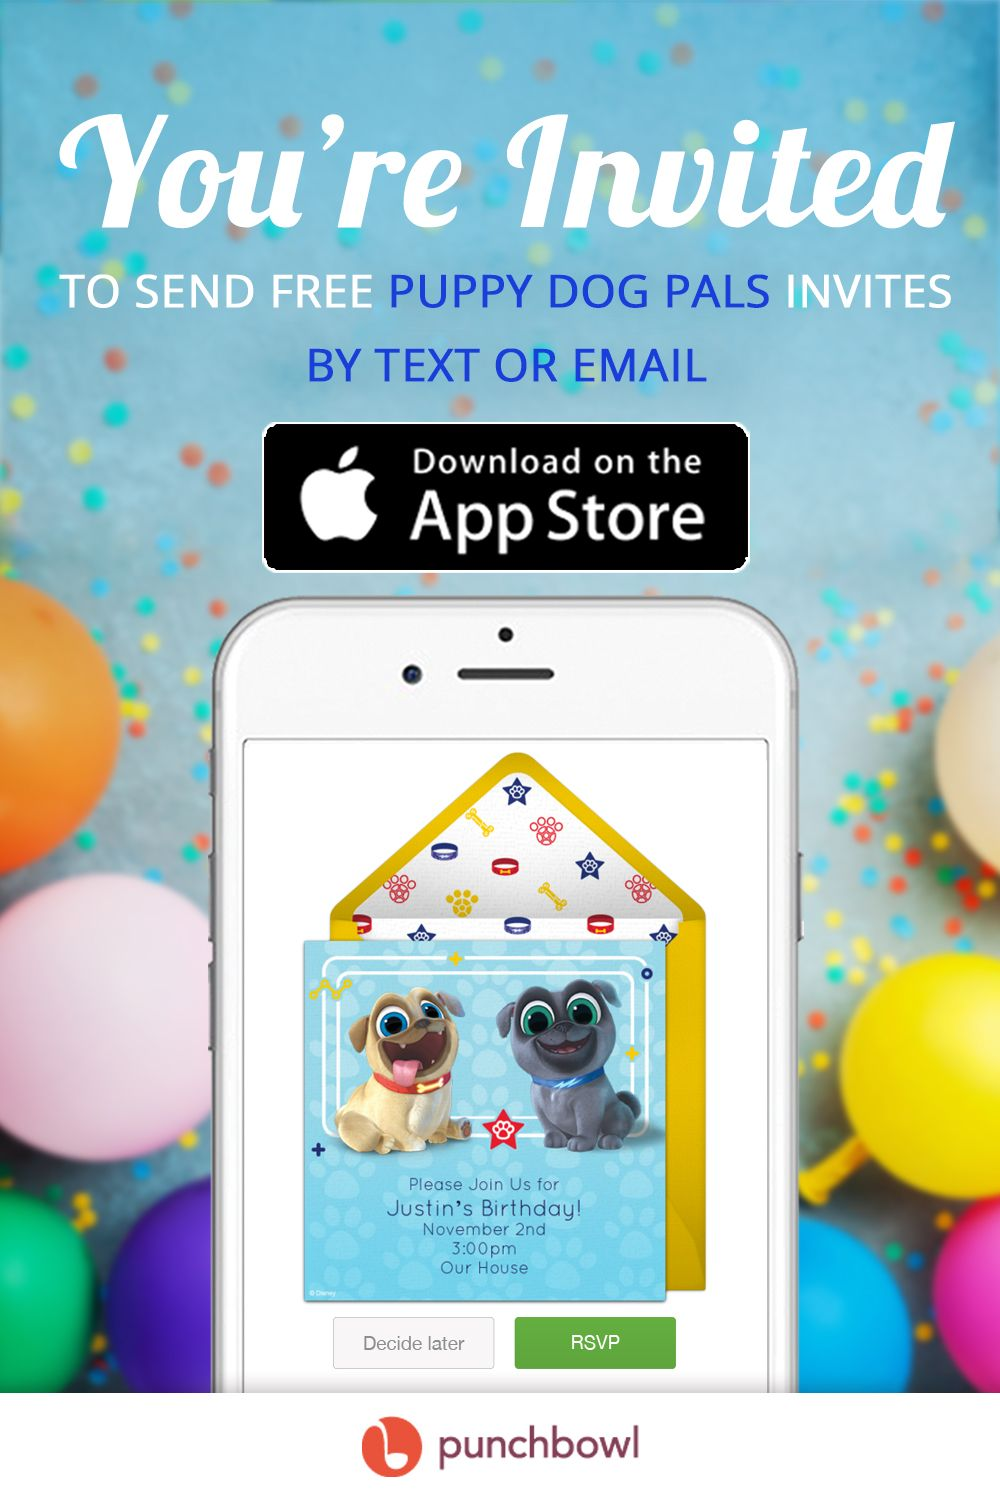 Send free Puppy Dog Pals invitations by text message right